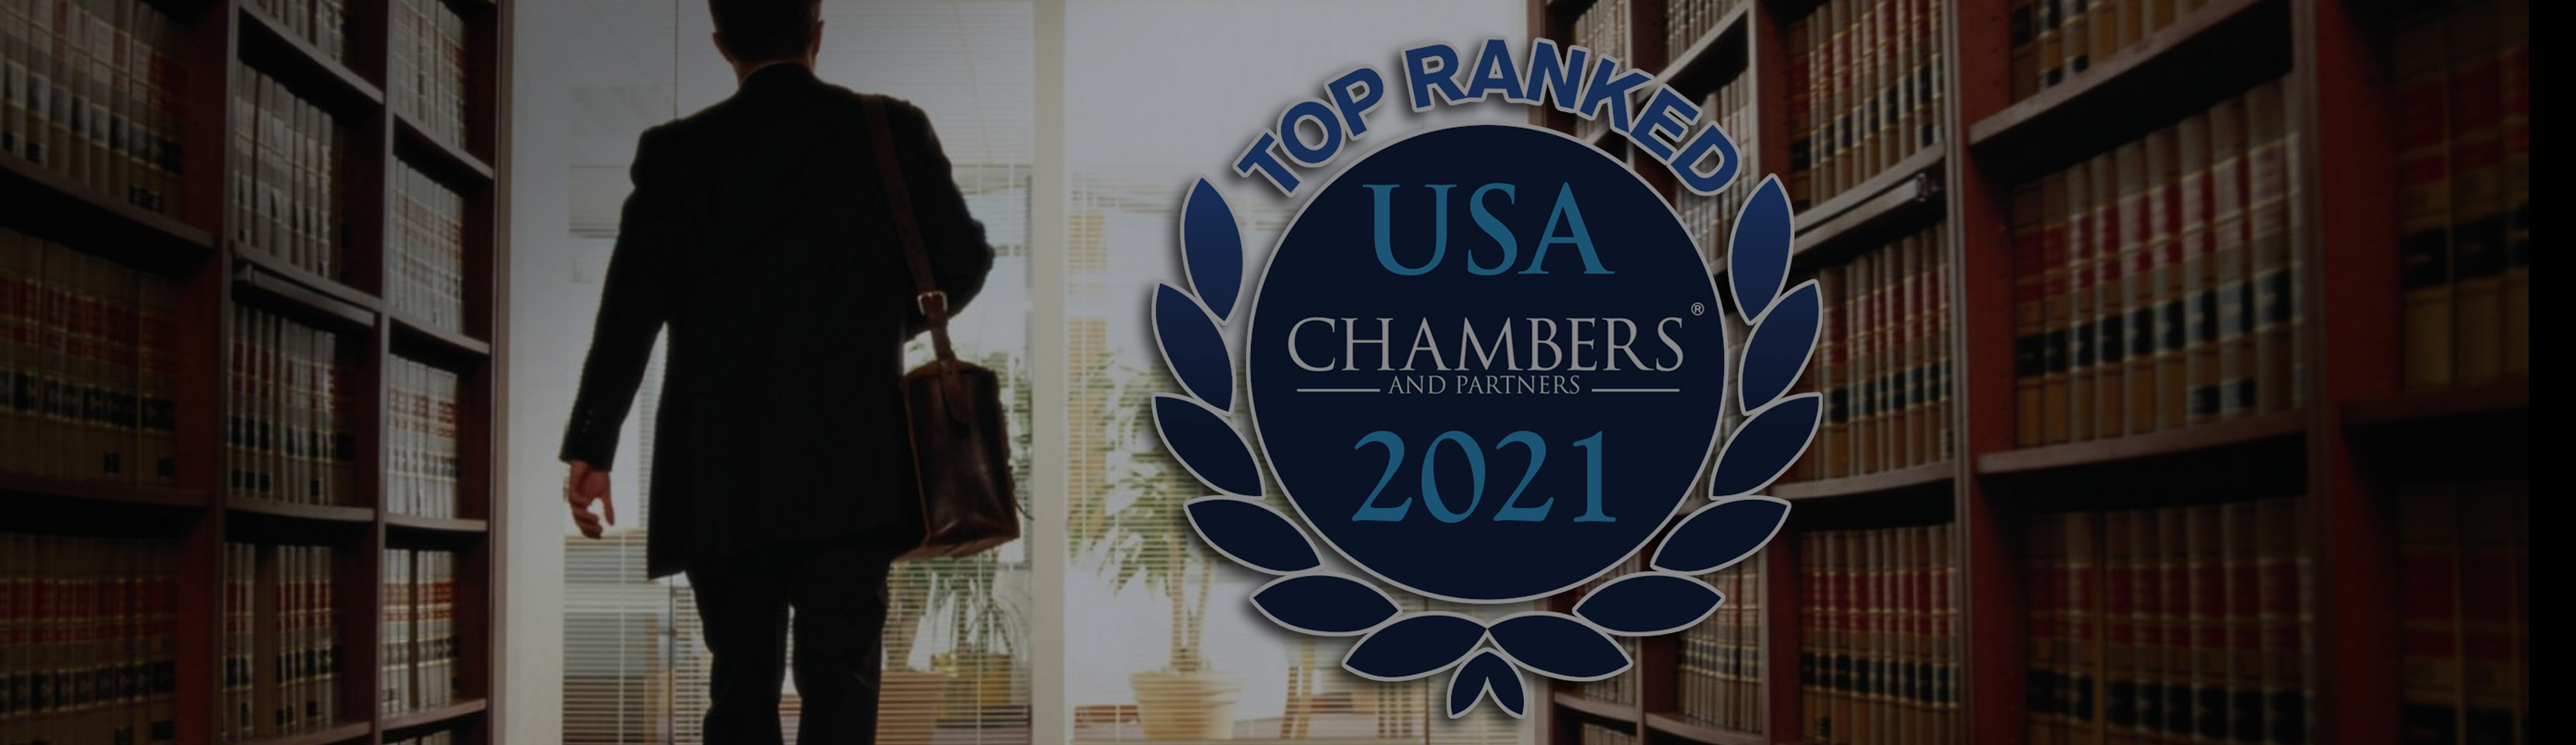 Chambers USA 2021 Awards Goodell DeVries Top Rankings